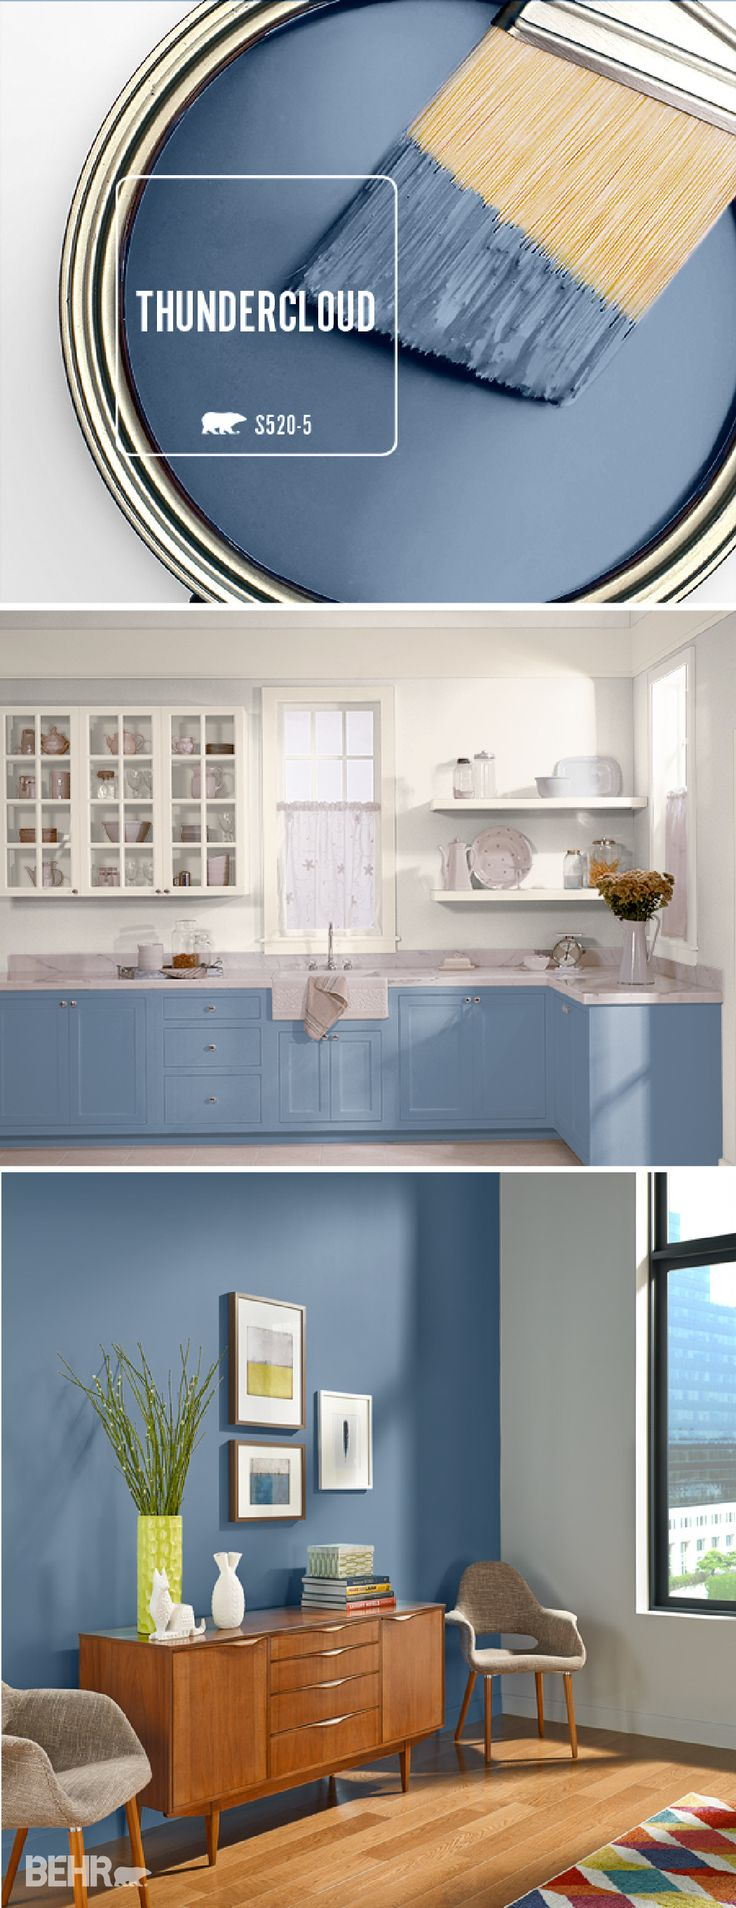 Add sophistication to your home by incorporating Thundercloud into your bedroom, kitchen, or entryway. This deep blue BEHR Paint color will look great on an accent wall or kitchen cabinets for a pop of color! #TrueToHue